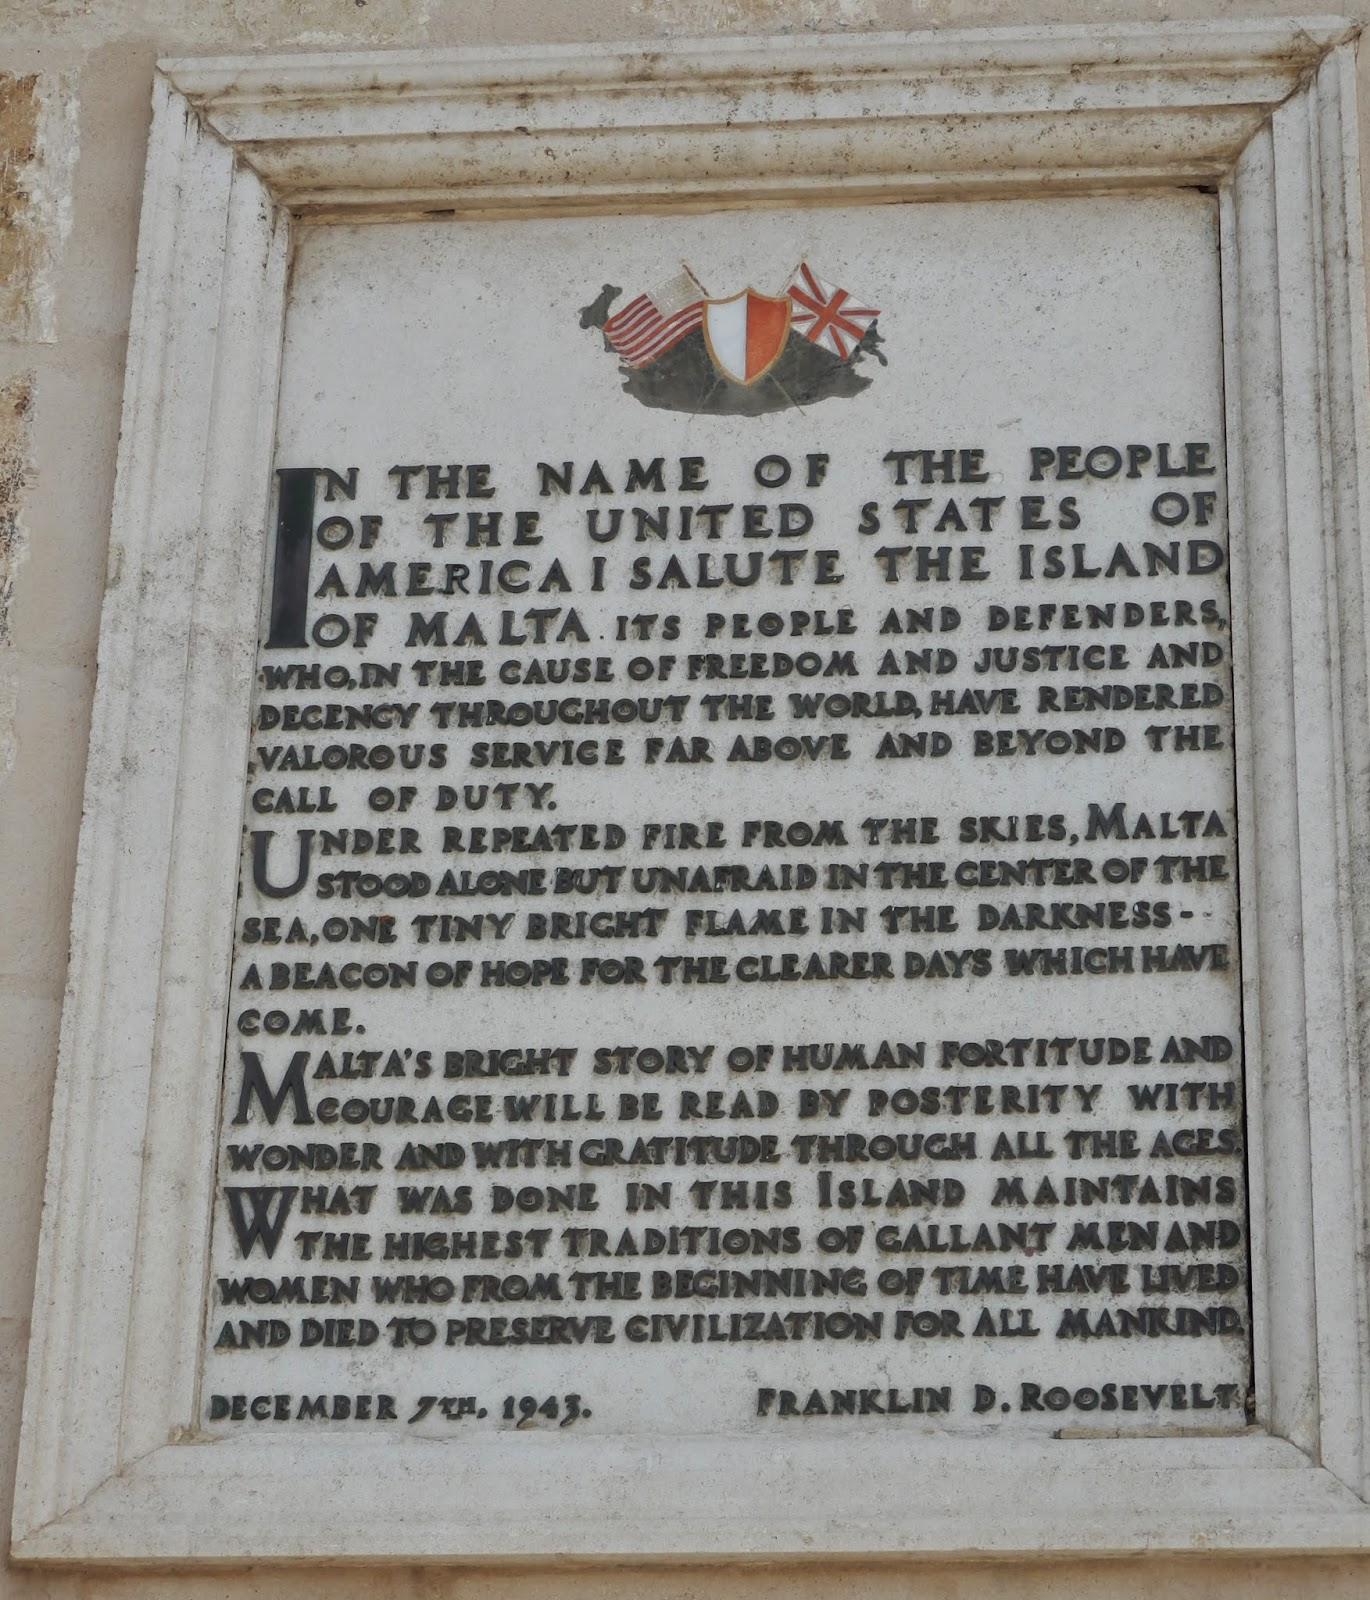 Letter from Franklin D Roosevelt to the people of Malta